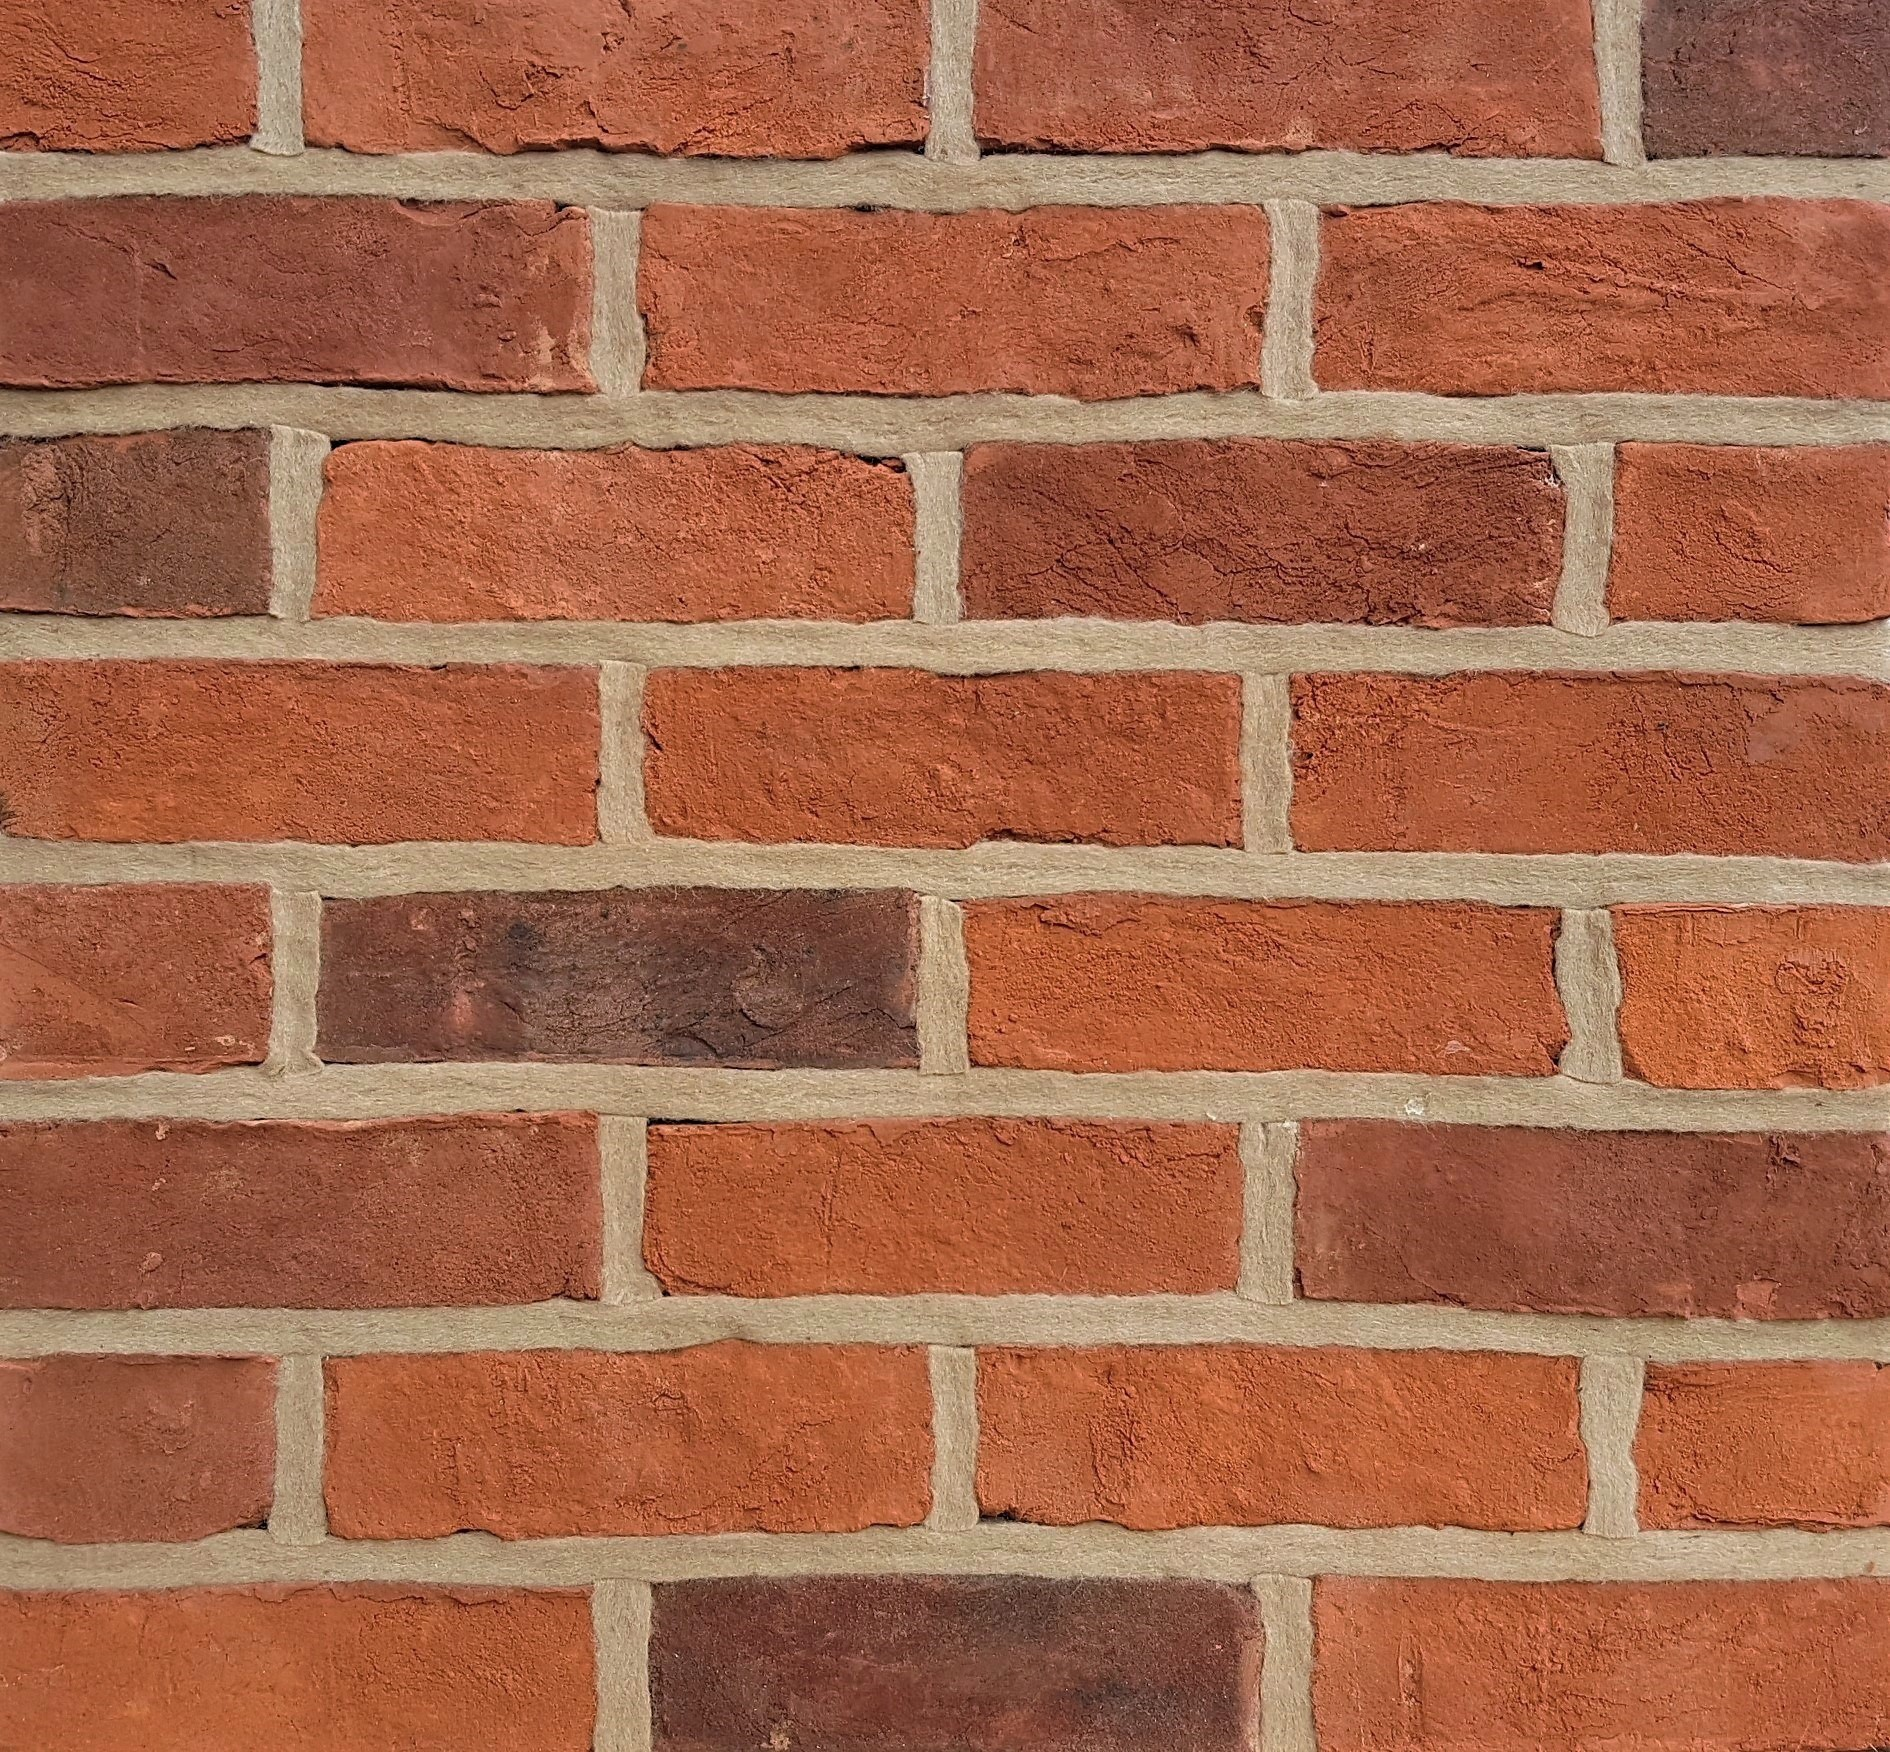 Handmade clay facing bricks